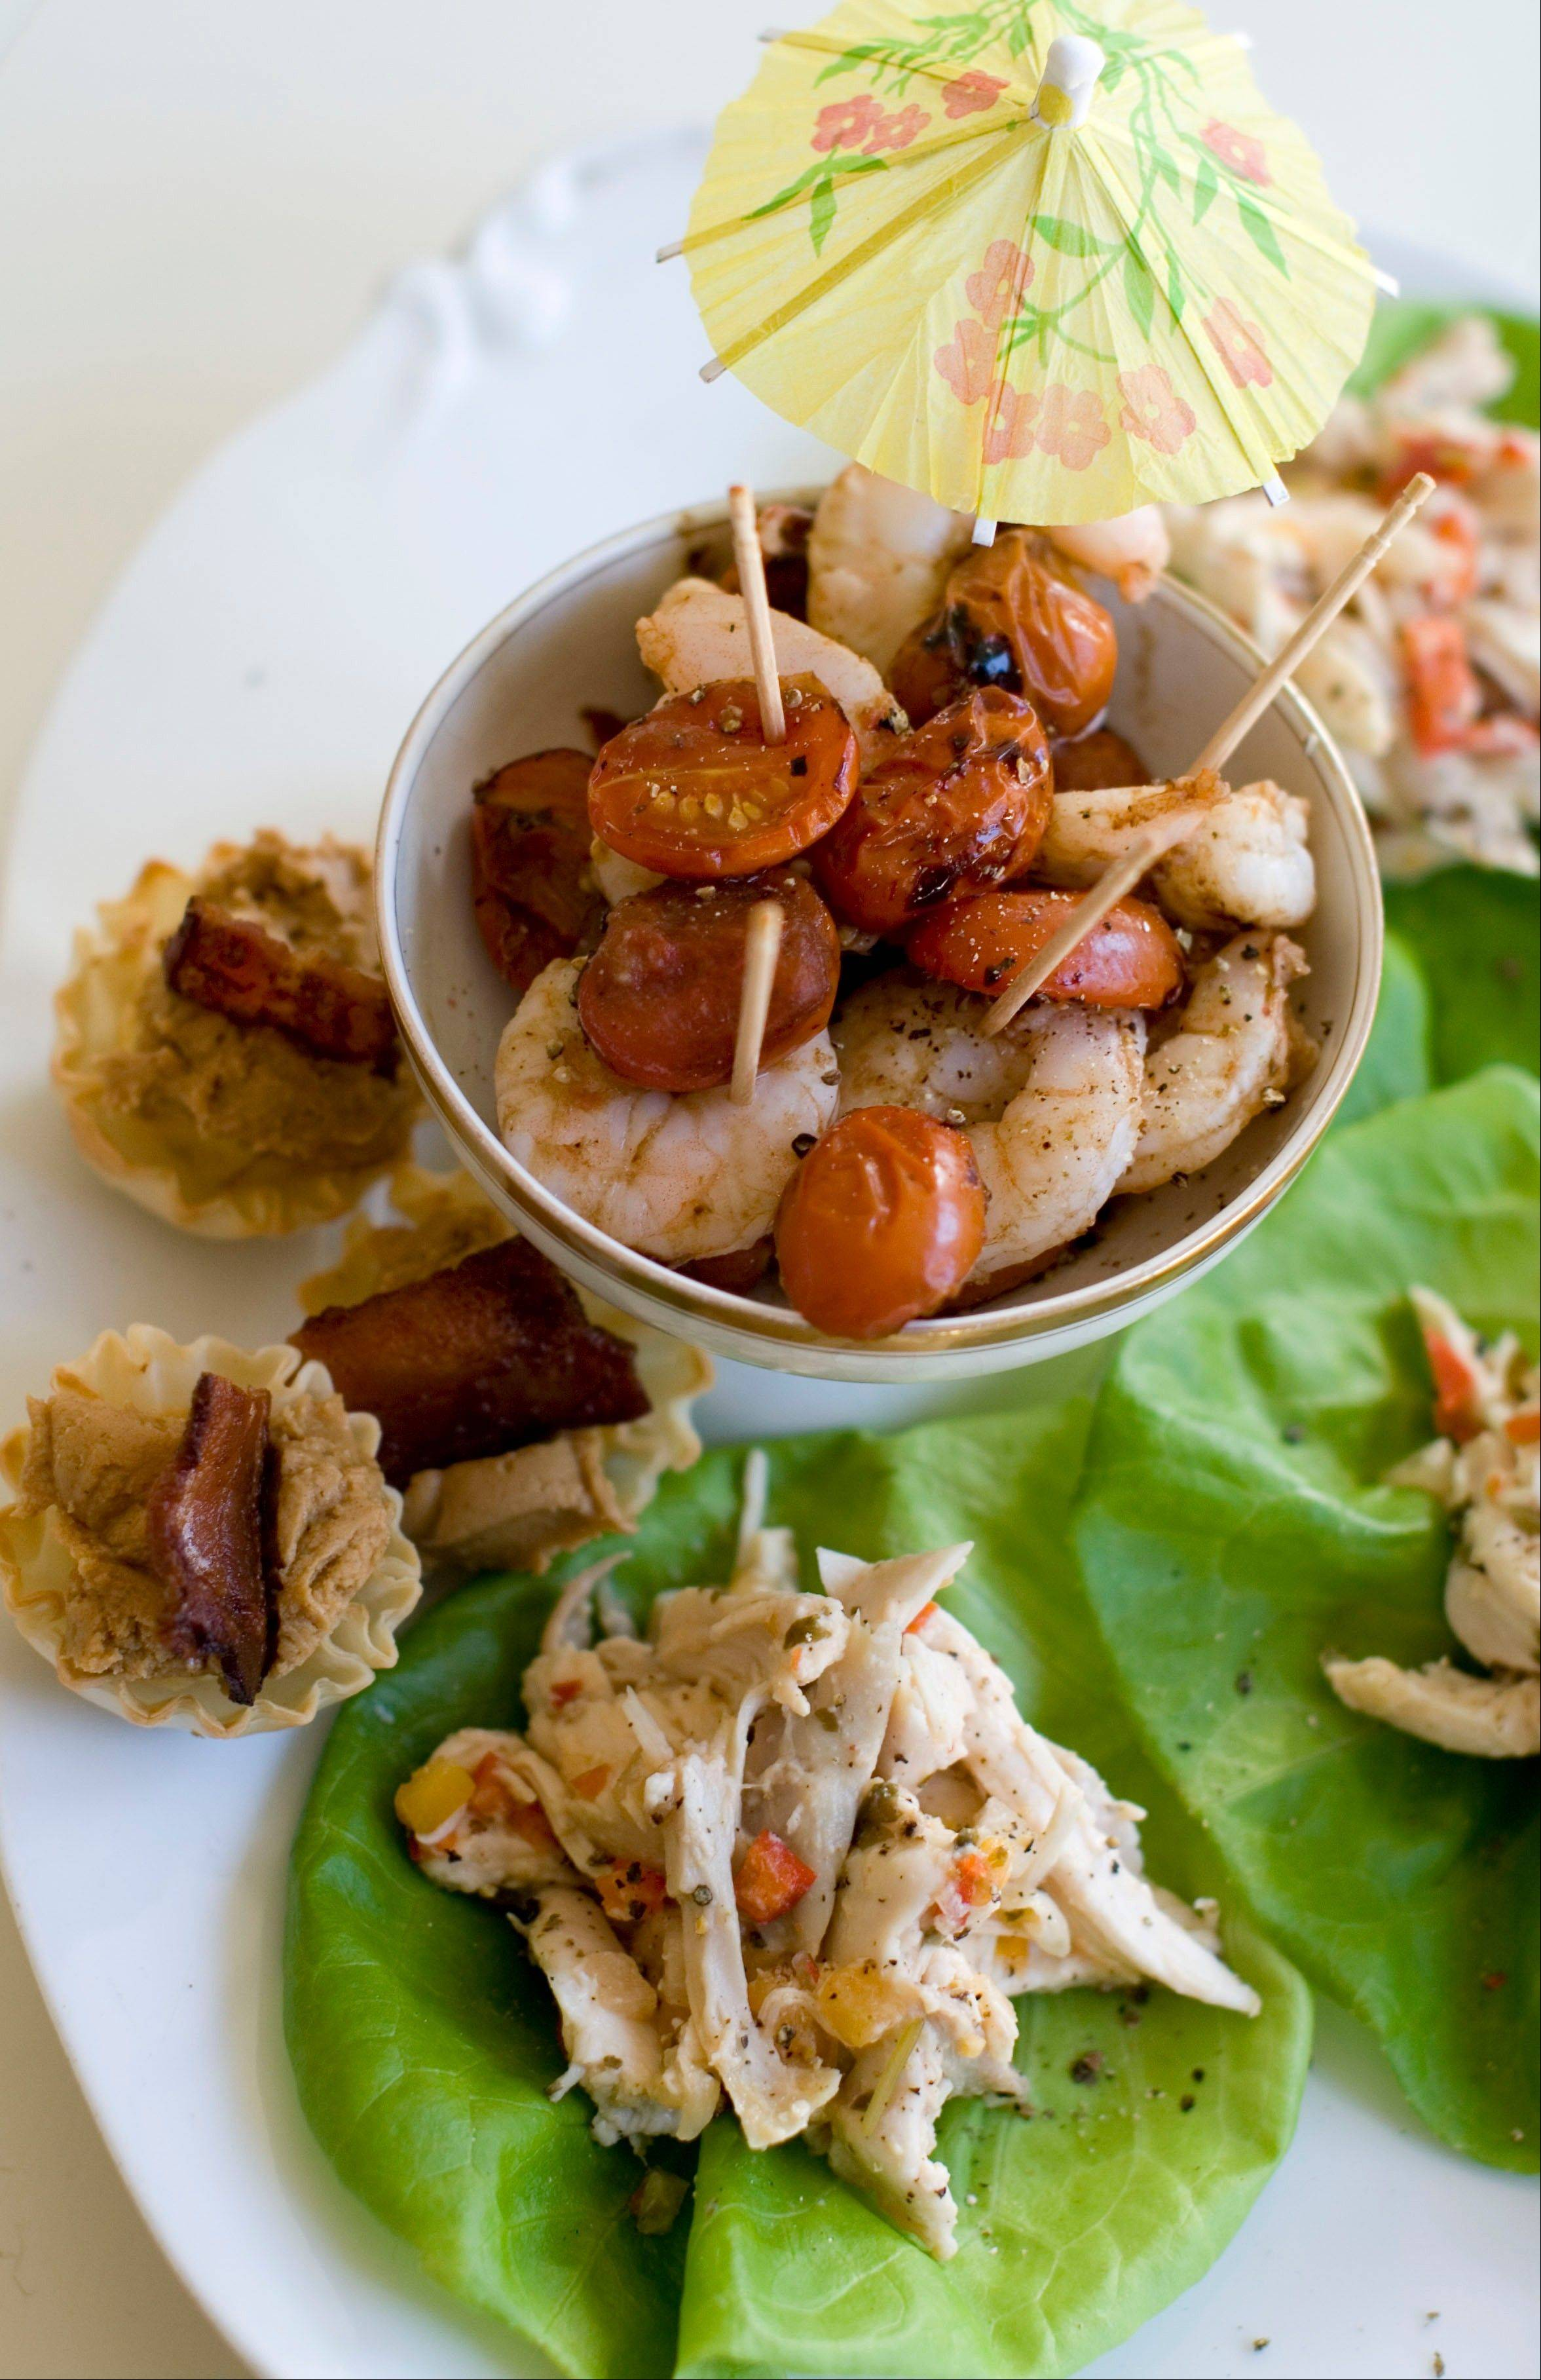 Roasted shrimp cocktail, pineapple chicken lettuce wraps and Elvis phyllo cups.